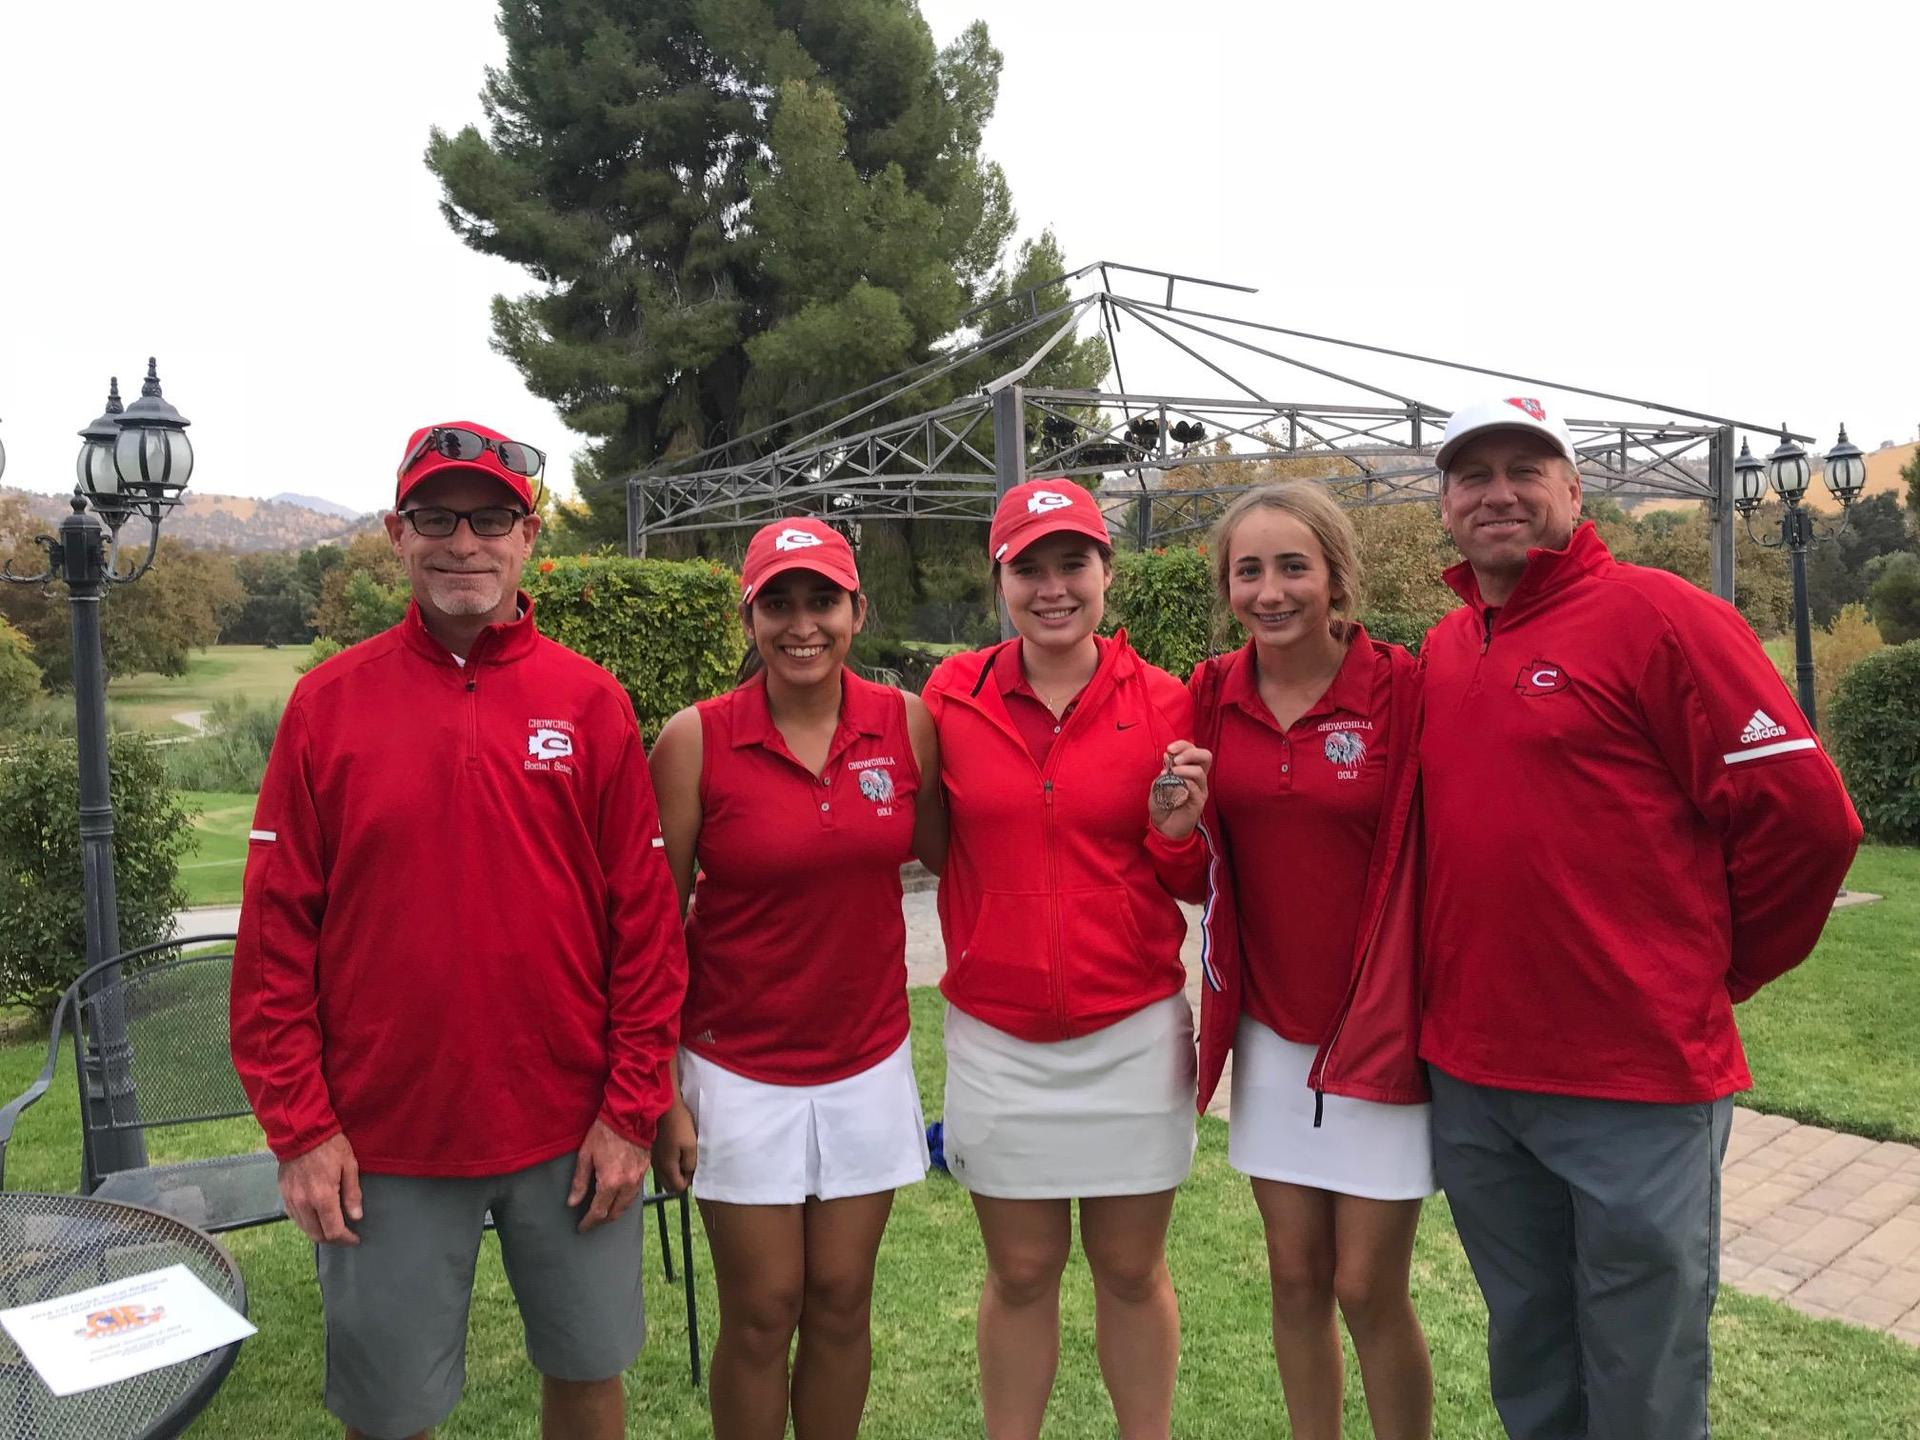 Coaches and Golfers at the Valley Championships